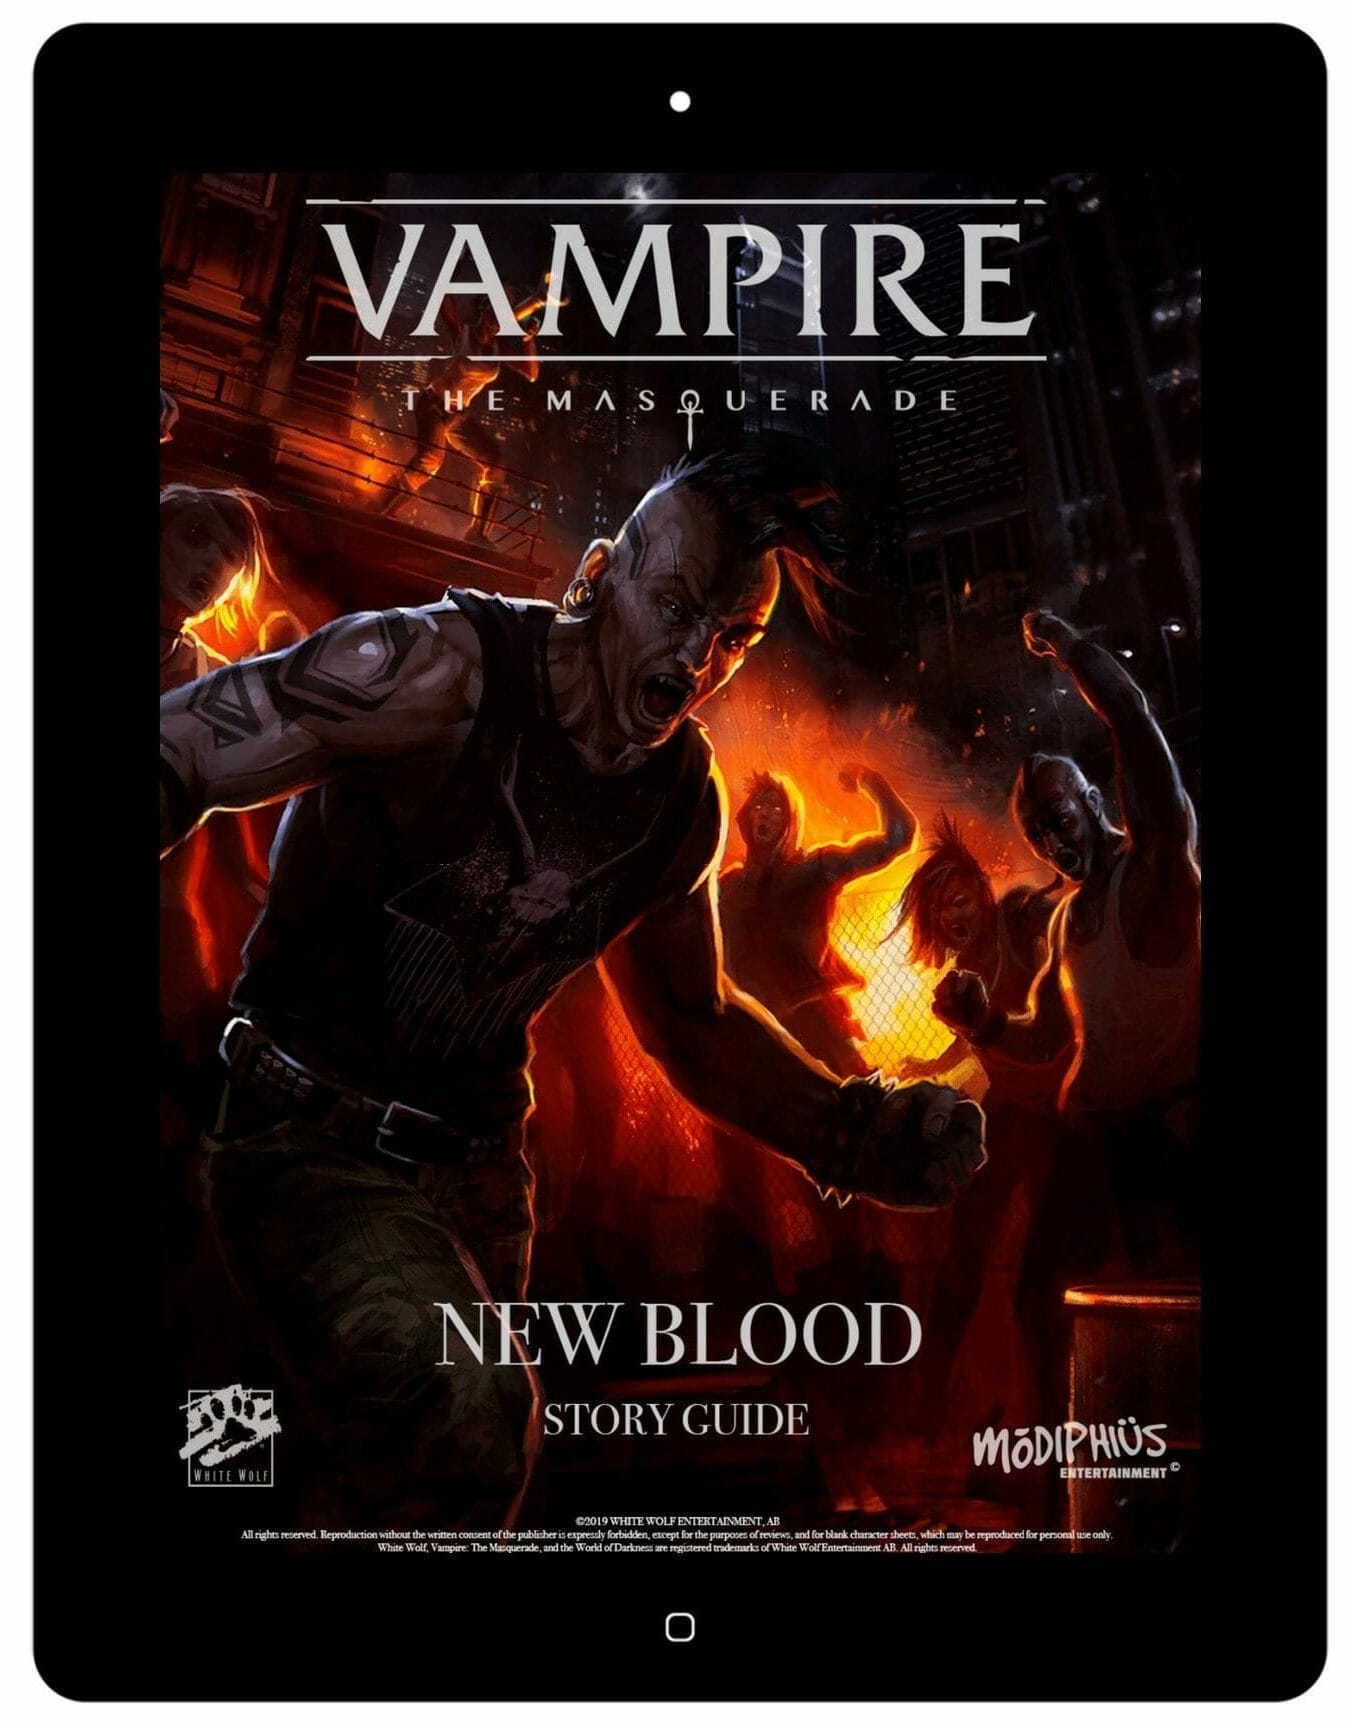 Vampire: the Masquerade - New Blood